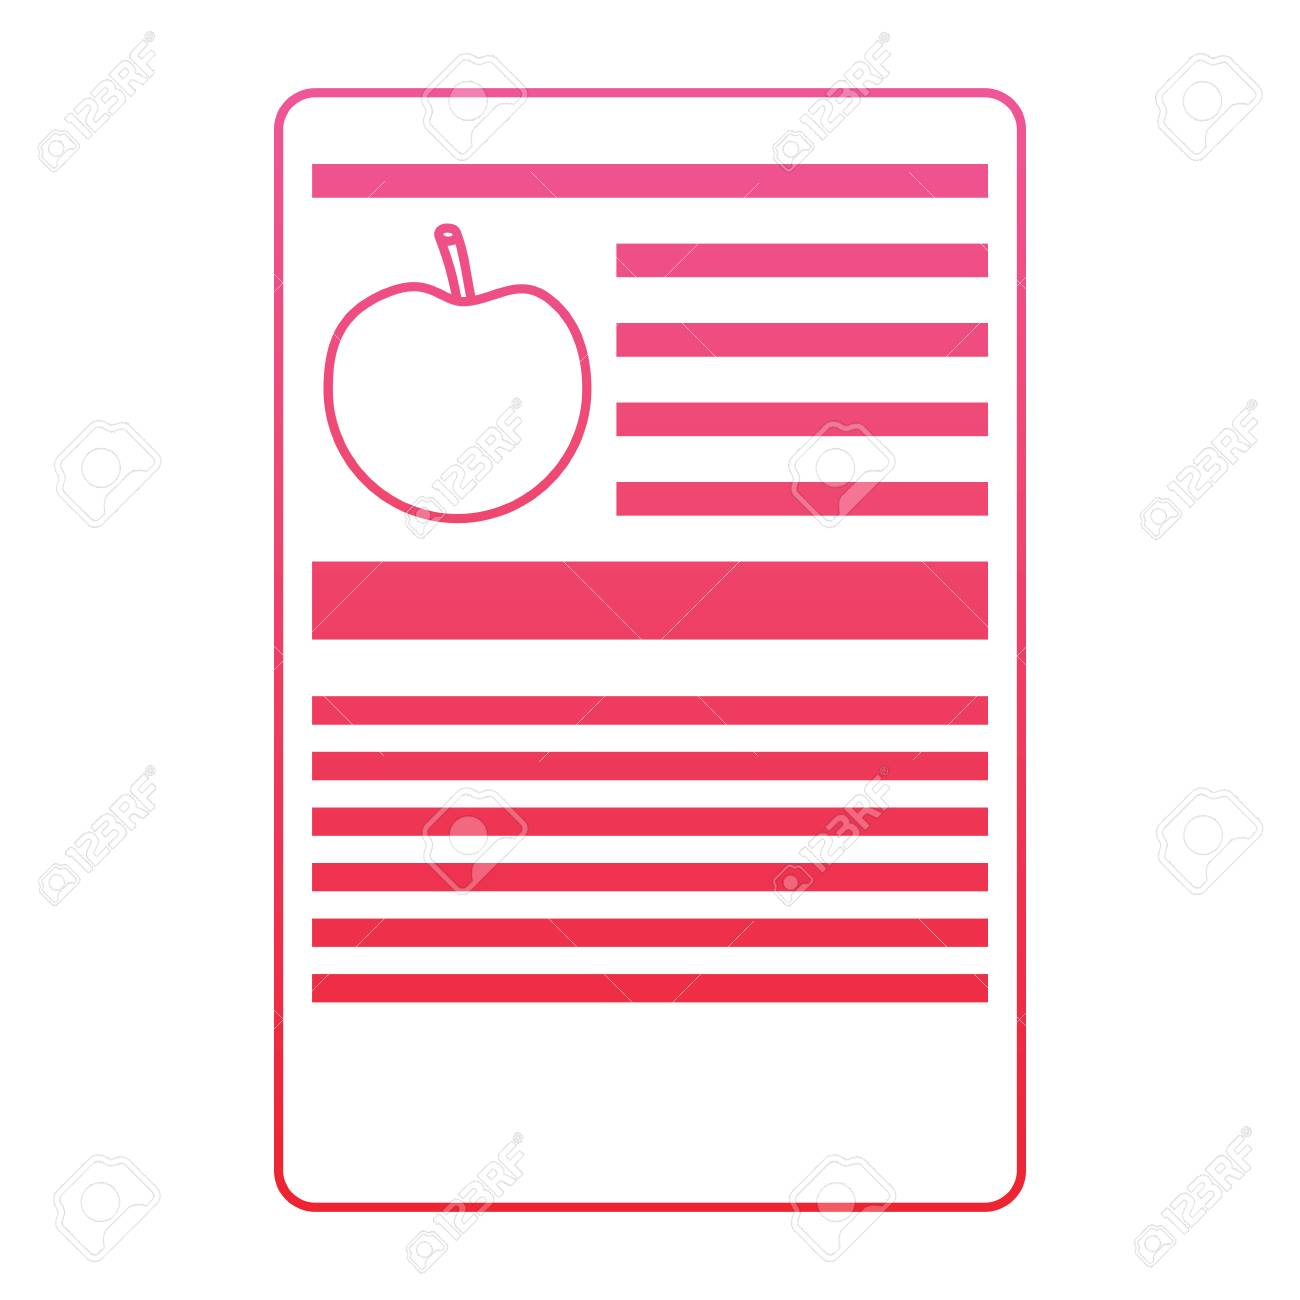 Apple Nutrition Facts Label Template Vector Illustration Red Royalty Free Cliparts Vectors And Stock Illustration Image 93505985